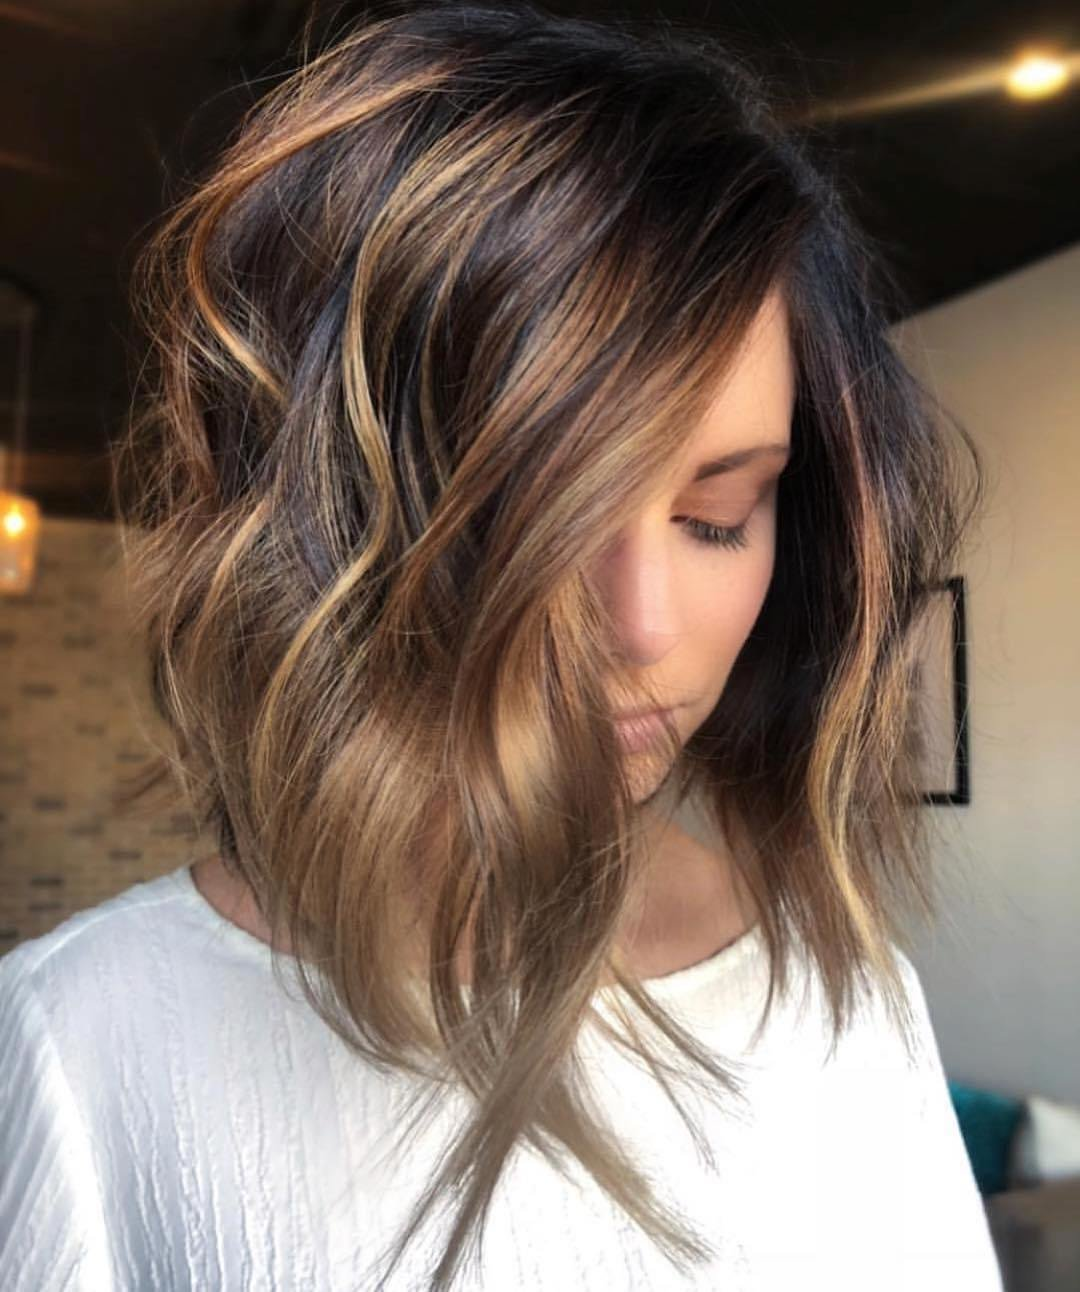 New 10 Trendy Ombre And Balayage Hairstyles For Shoulder Length Hair 2019 Ideas With Pictures